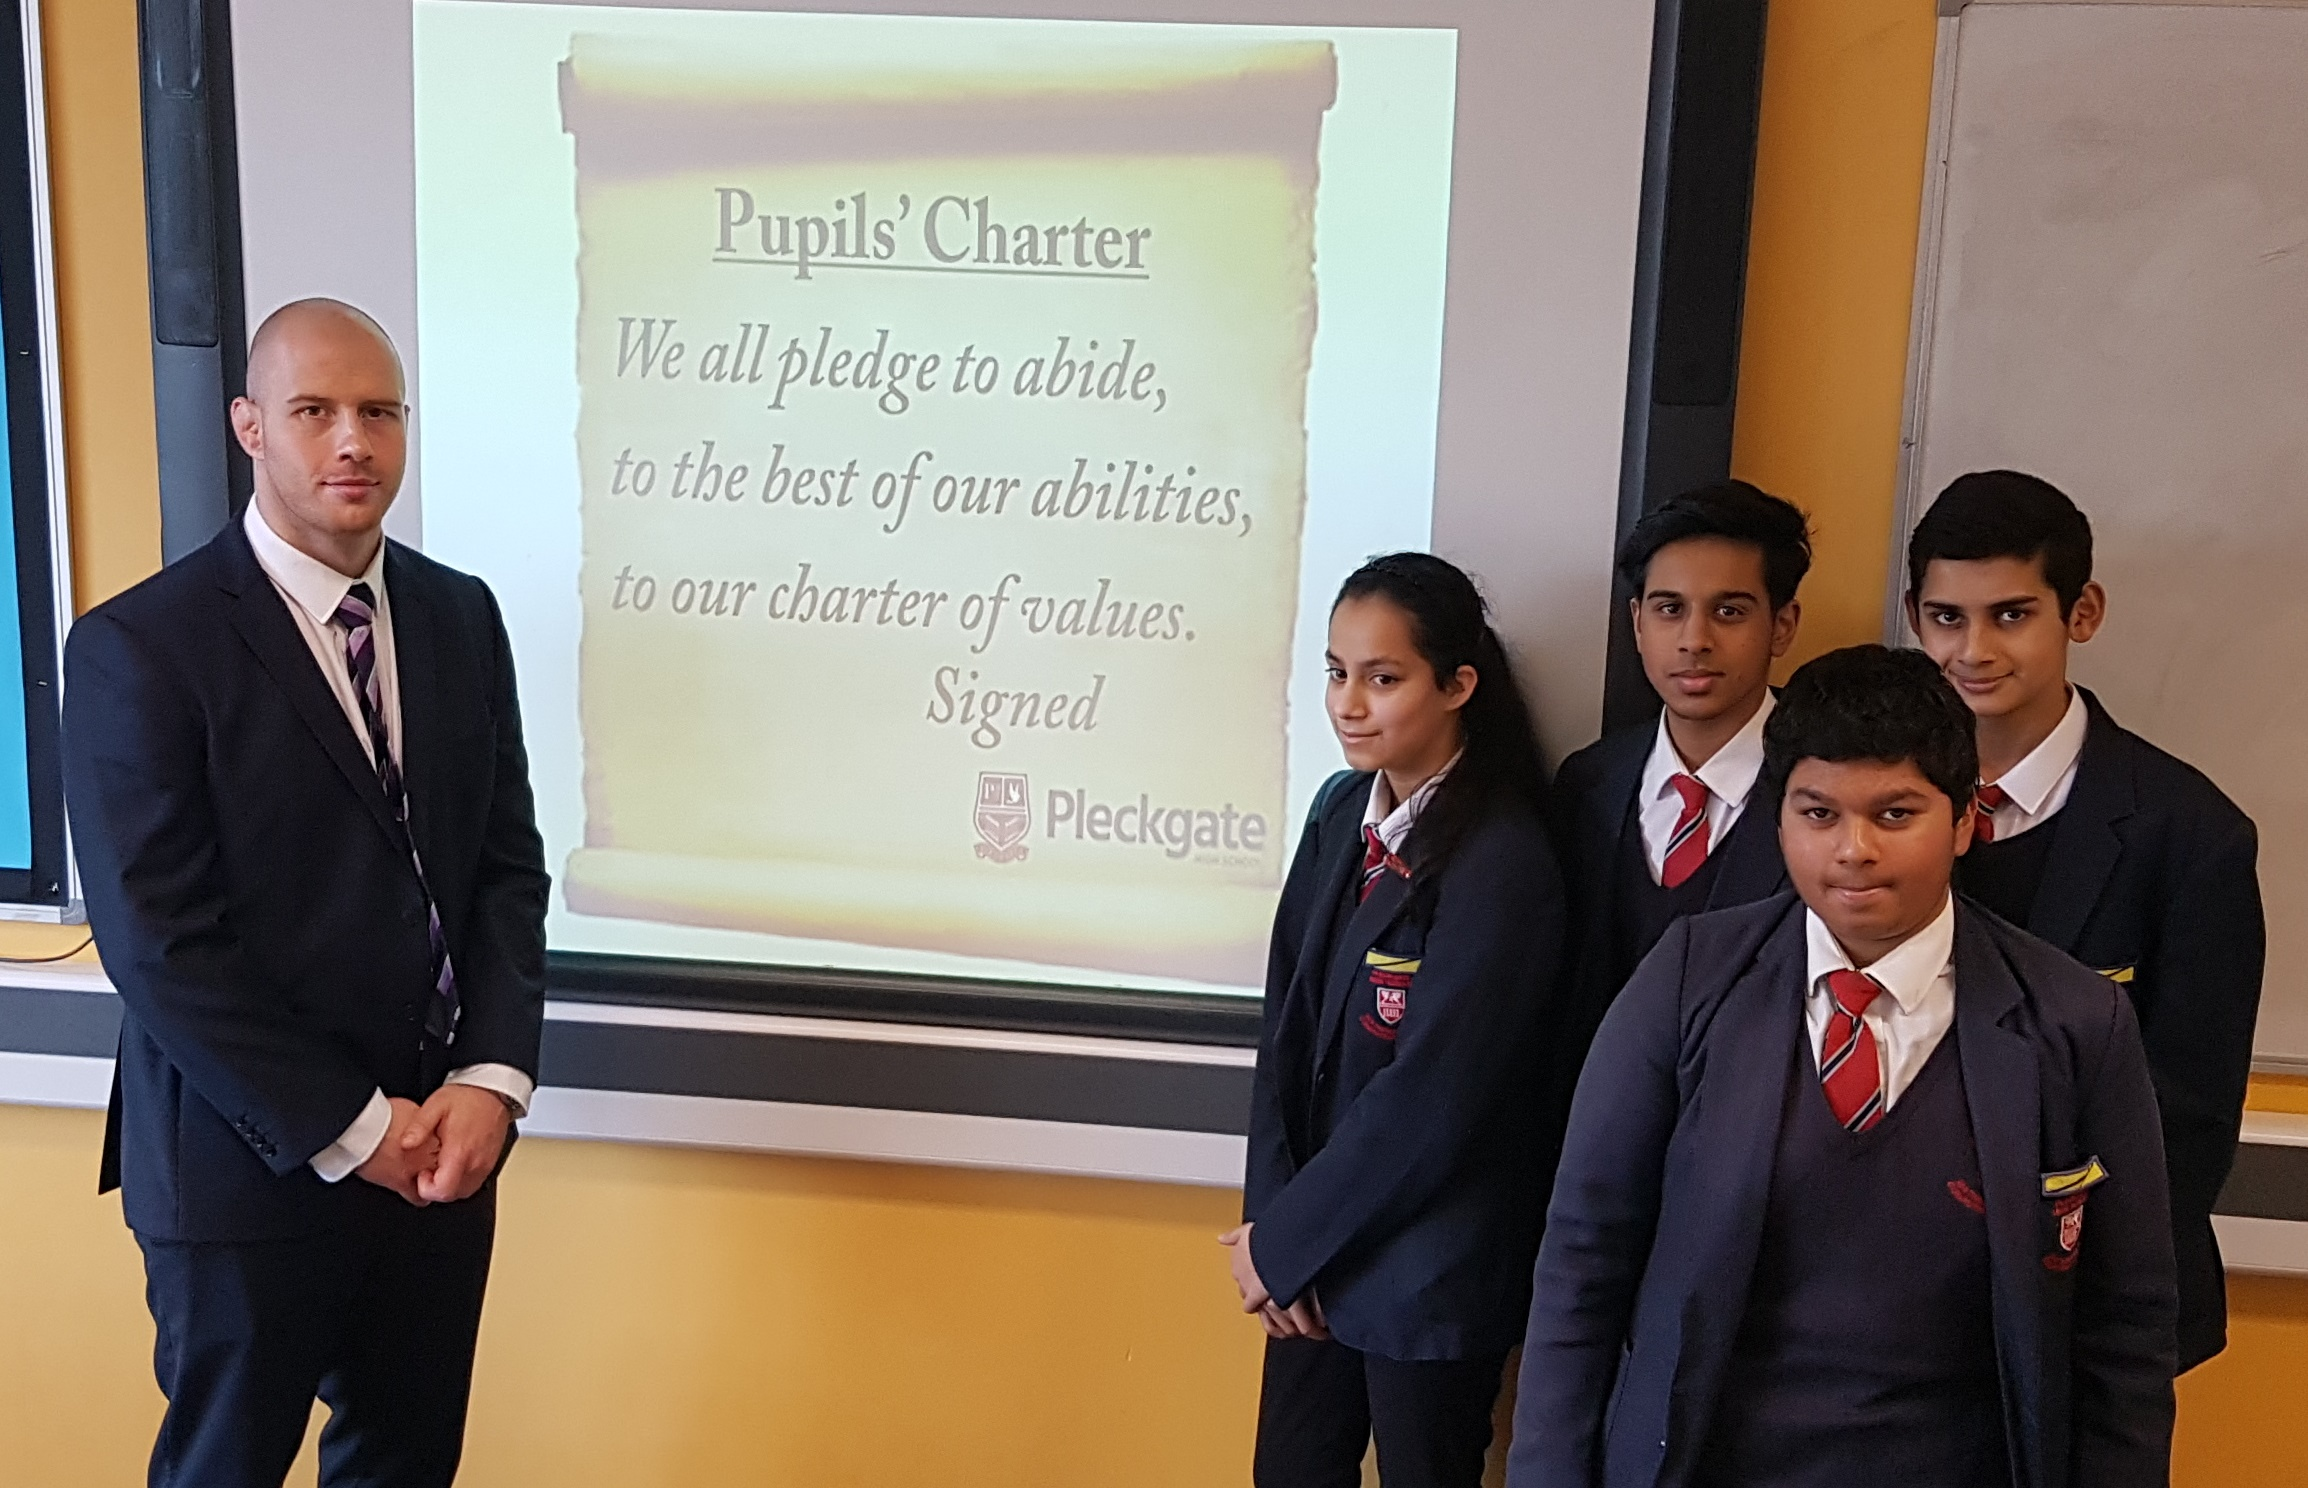 Pupils' Charter – Blackburn with Darwen Schools